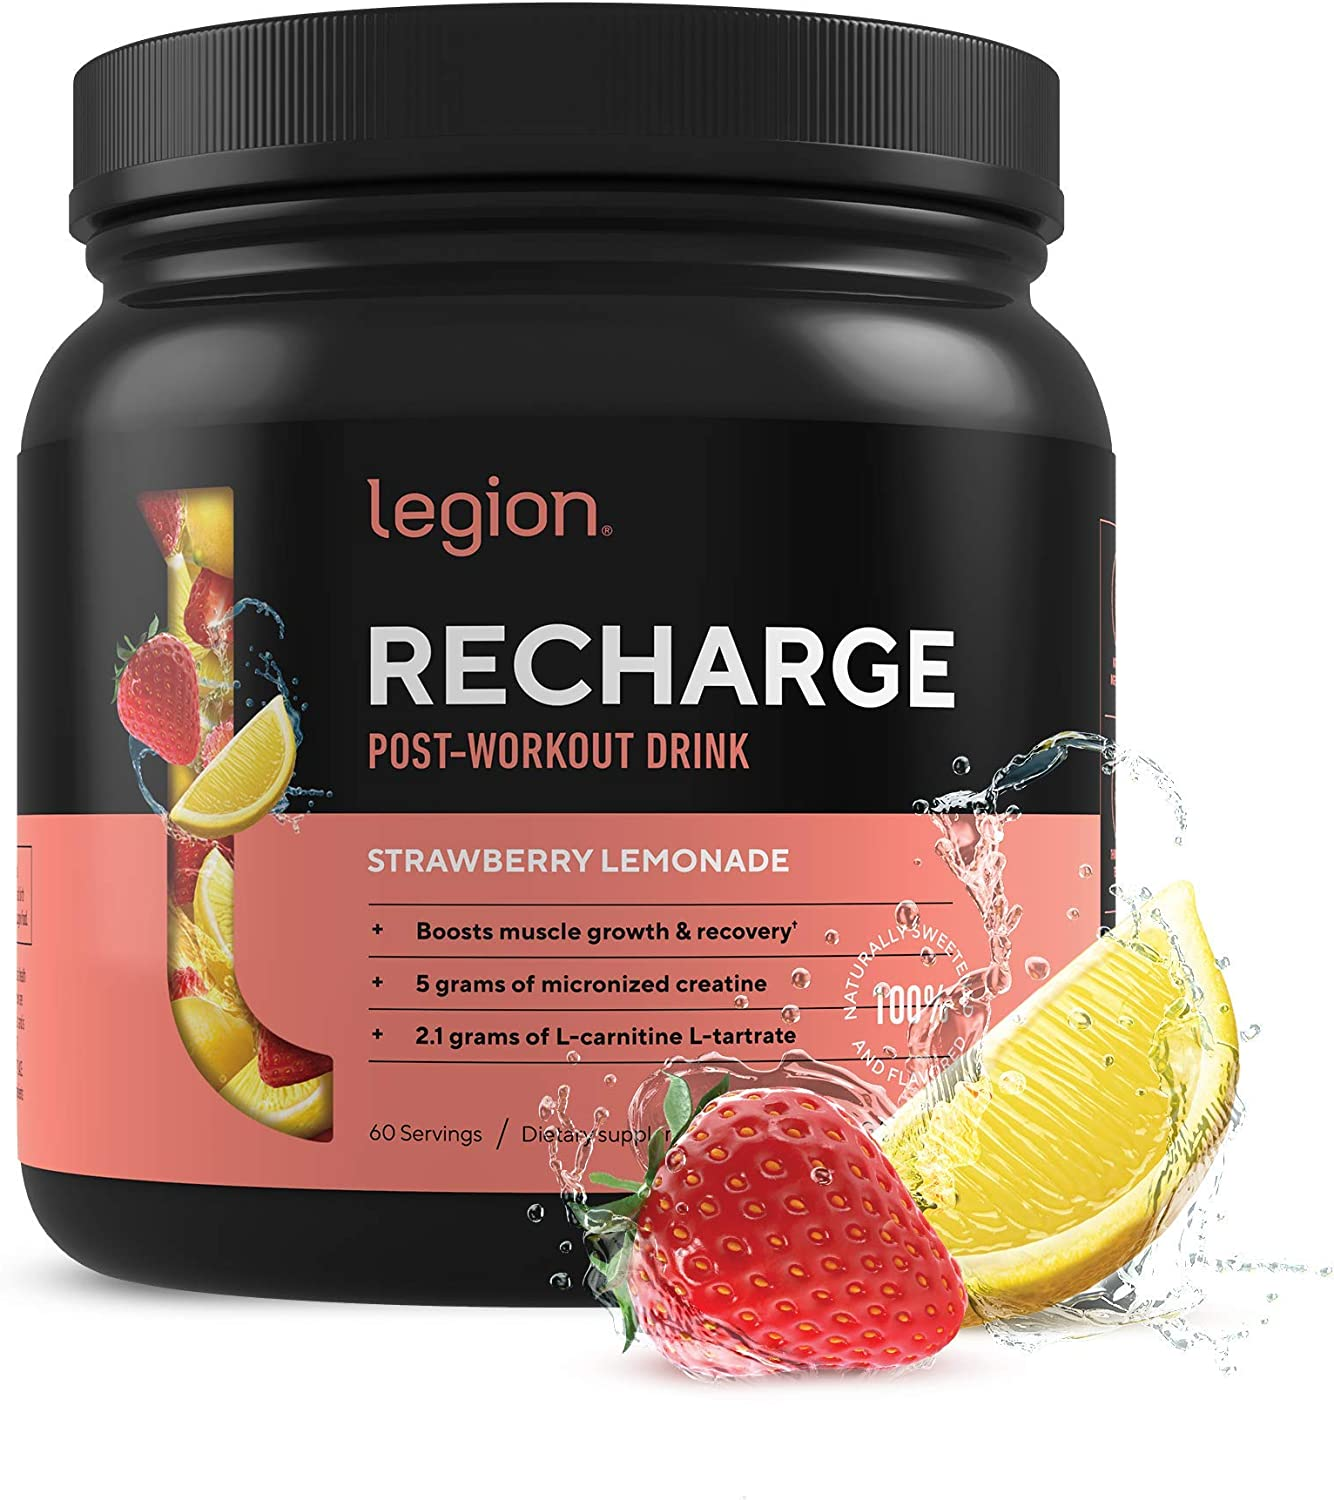 Legion Recharge Post Workout Supplement - All Natural Muscle Builder & Recovery Drink With Micronized Creatine Monohydrate. Naturally Sweetened & Flavored, Safe & Healthy. Strawberry Lemonade, 60 Serv